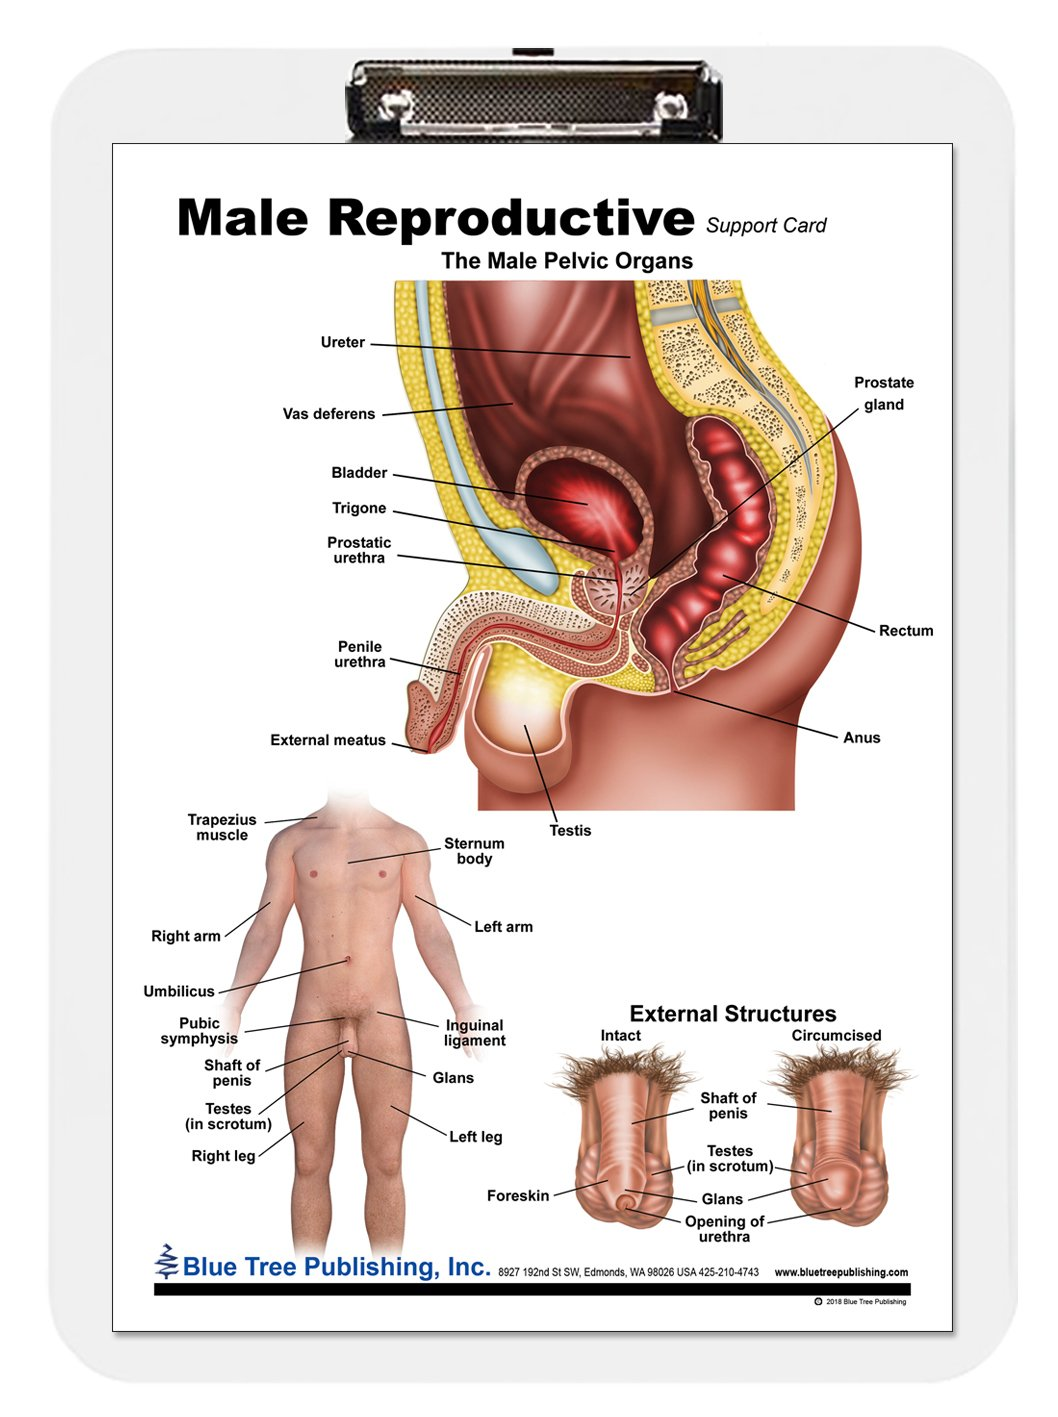 Male Reproductive Anatomy Poster Amazon Industrial Scientific